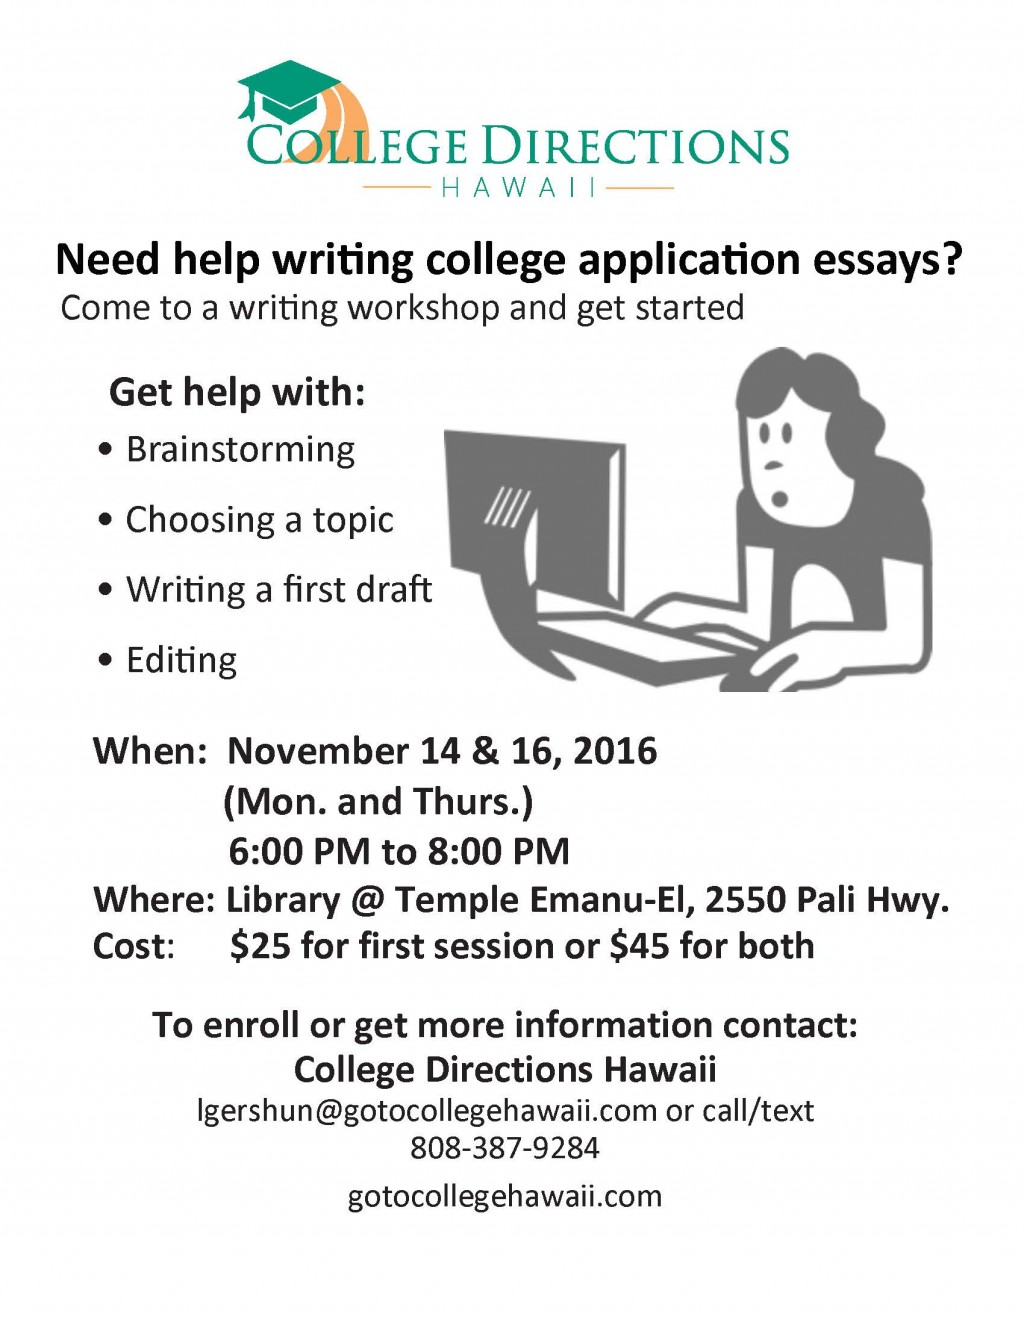 023 Essay Writing Workshop Flyer Example College Amazing Editing Services Online Jobs Checklist Large